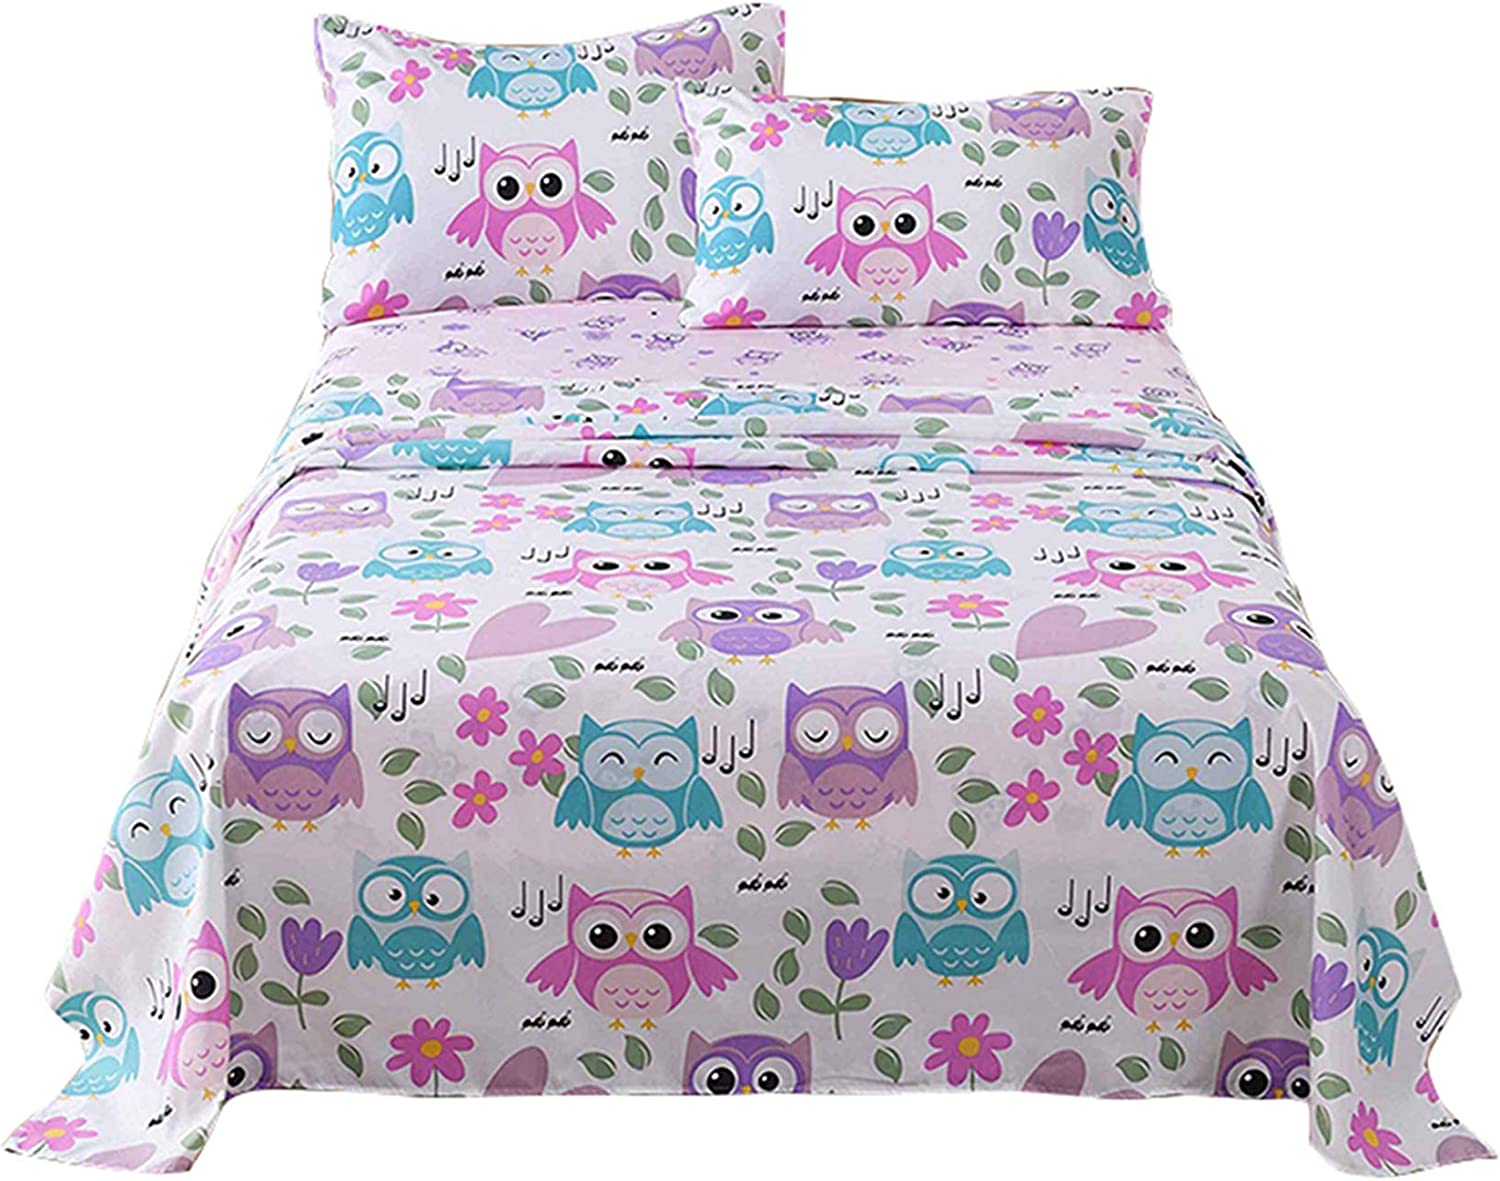 MarCielo Popular brand Bed Sheets for Kids Boys Girls Tee Full Max 68% OFF